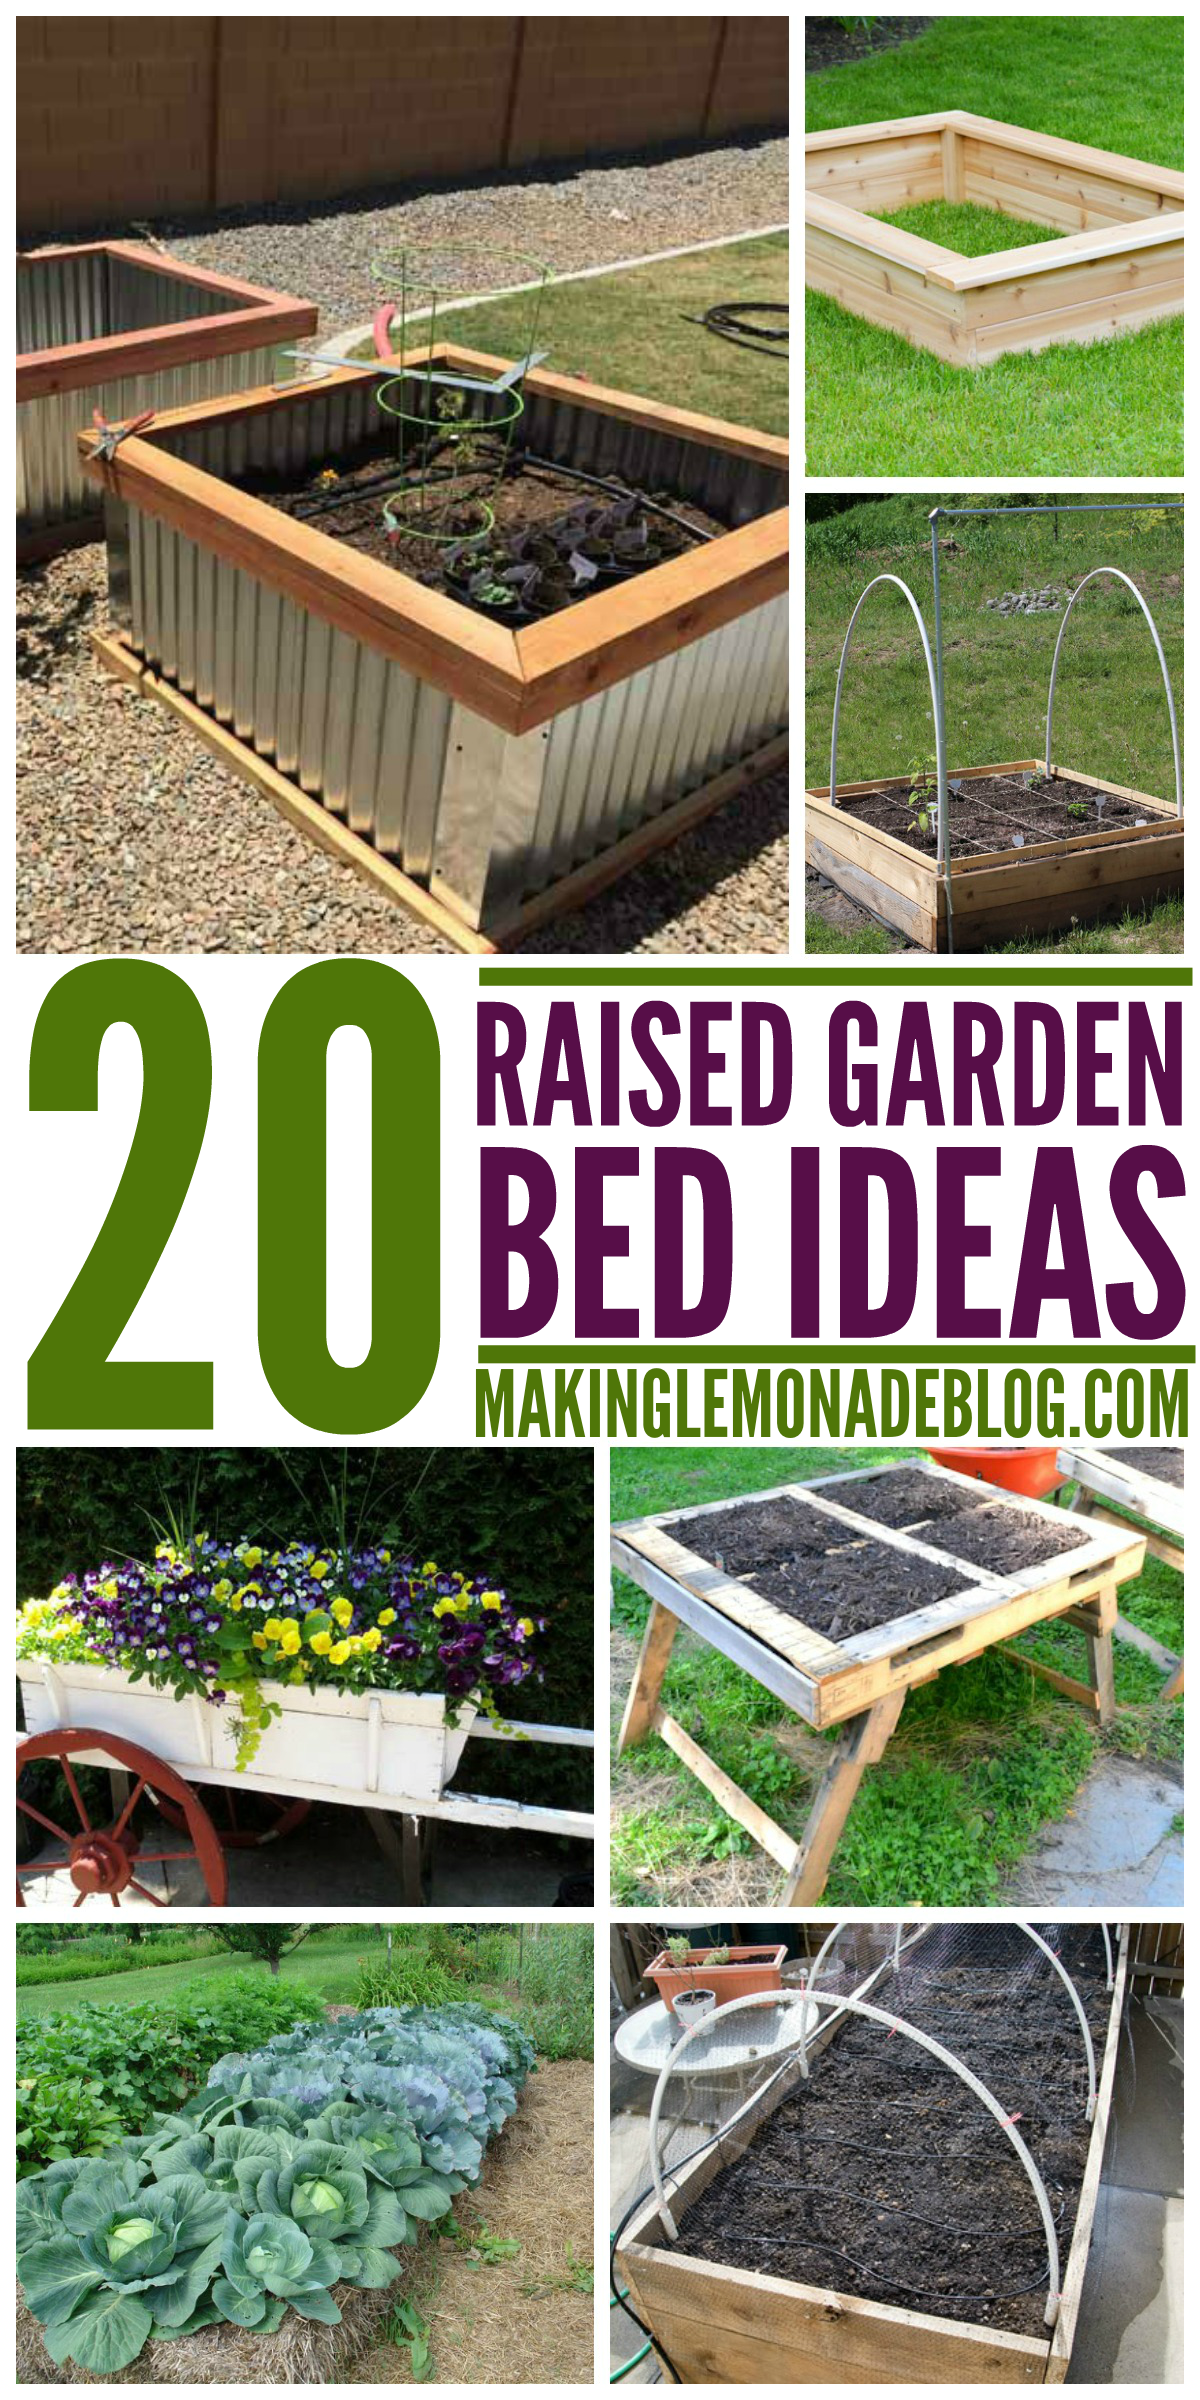 20 Brilliant Raised Garden Bed Ideas You Can Make In A ...